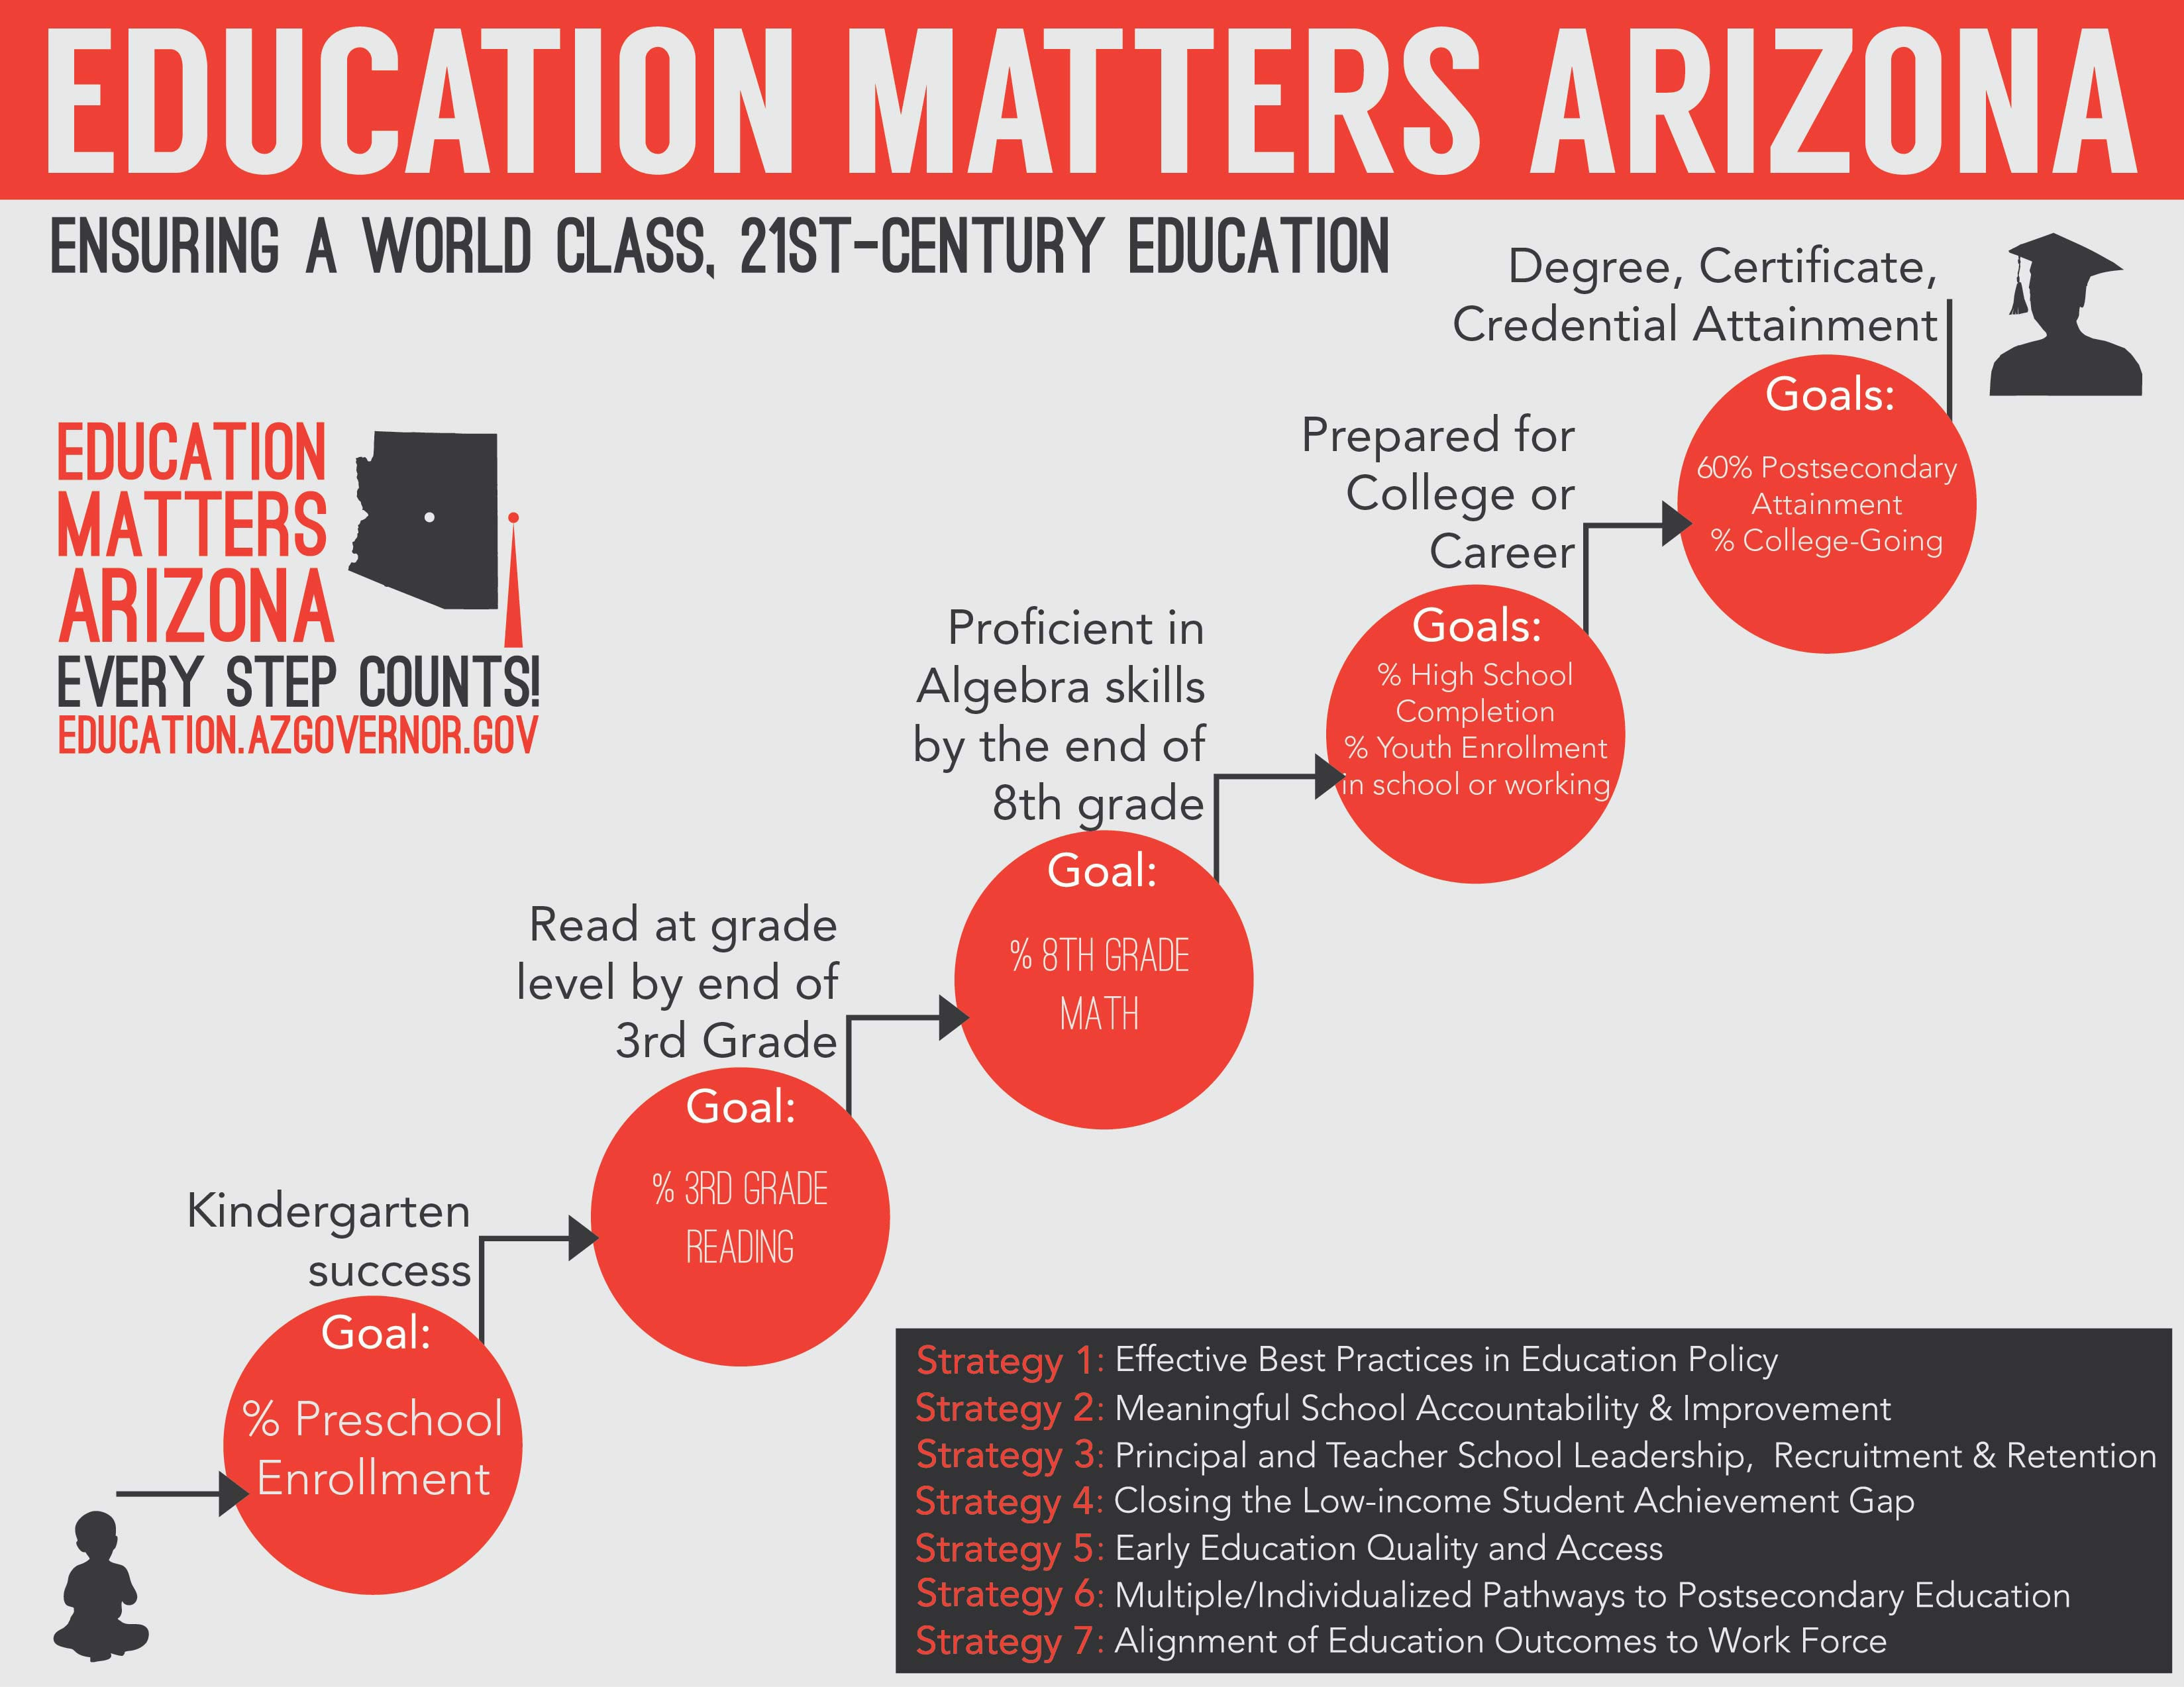 Education Matters Arizona